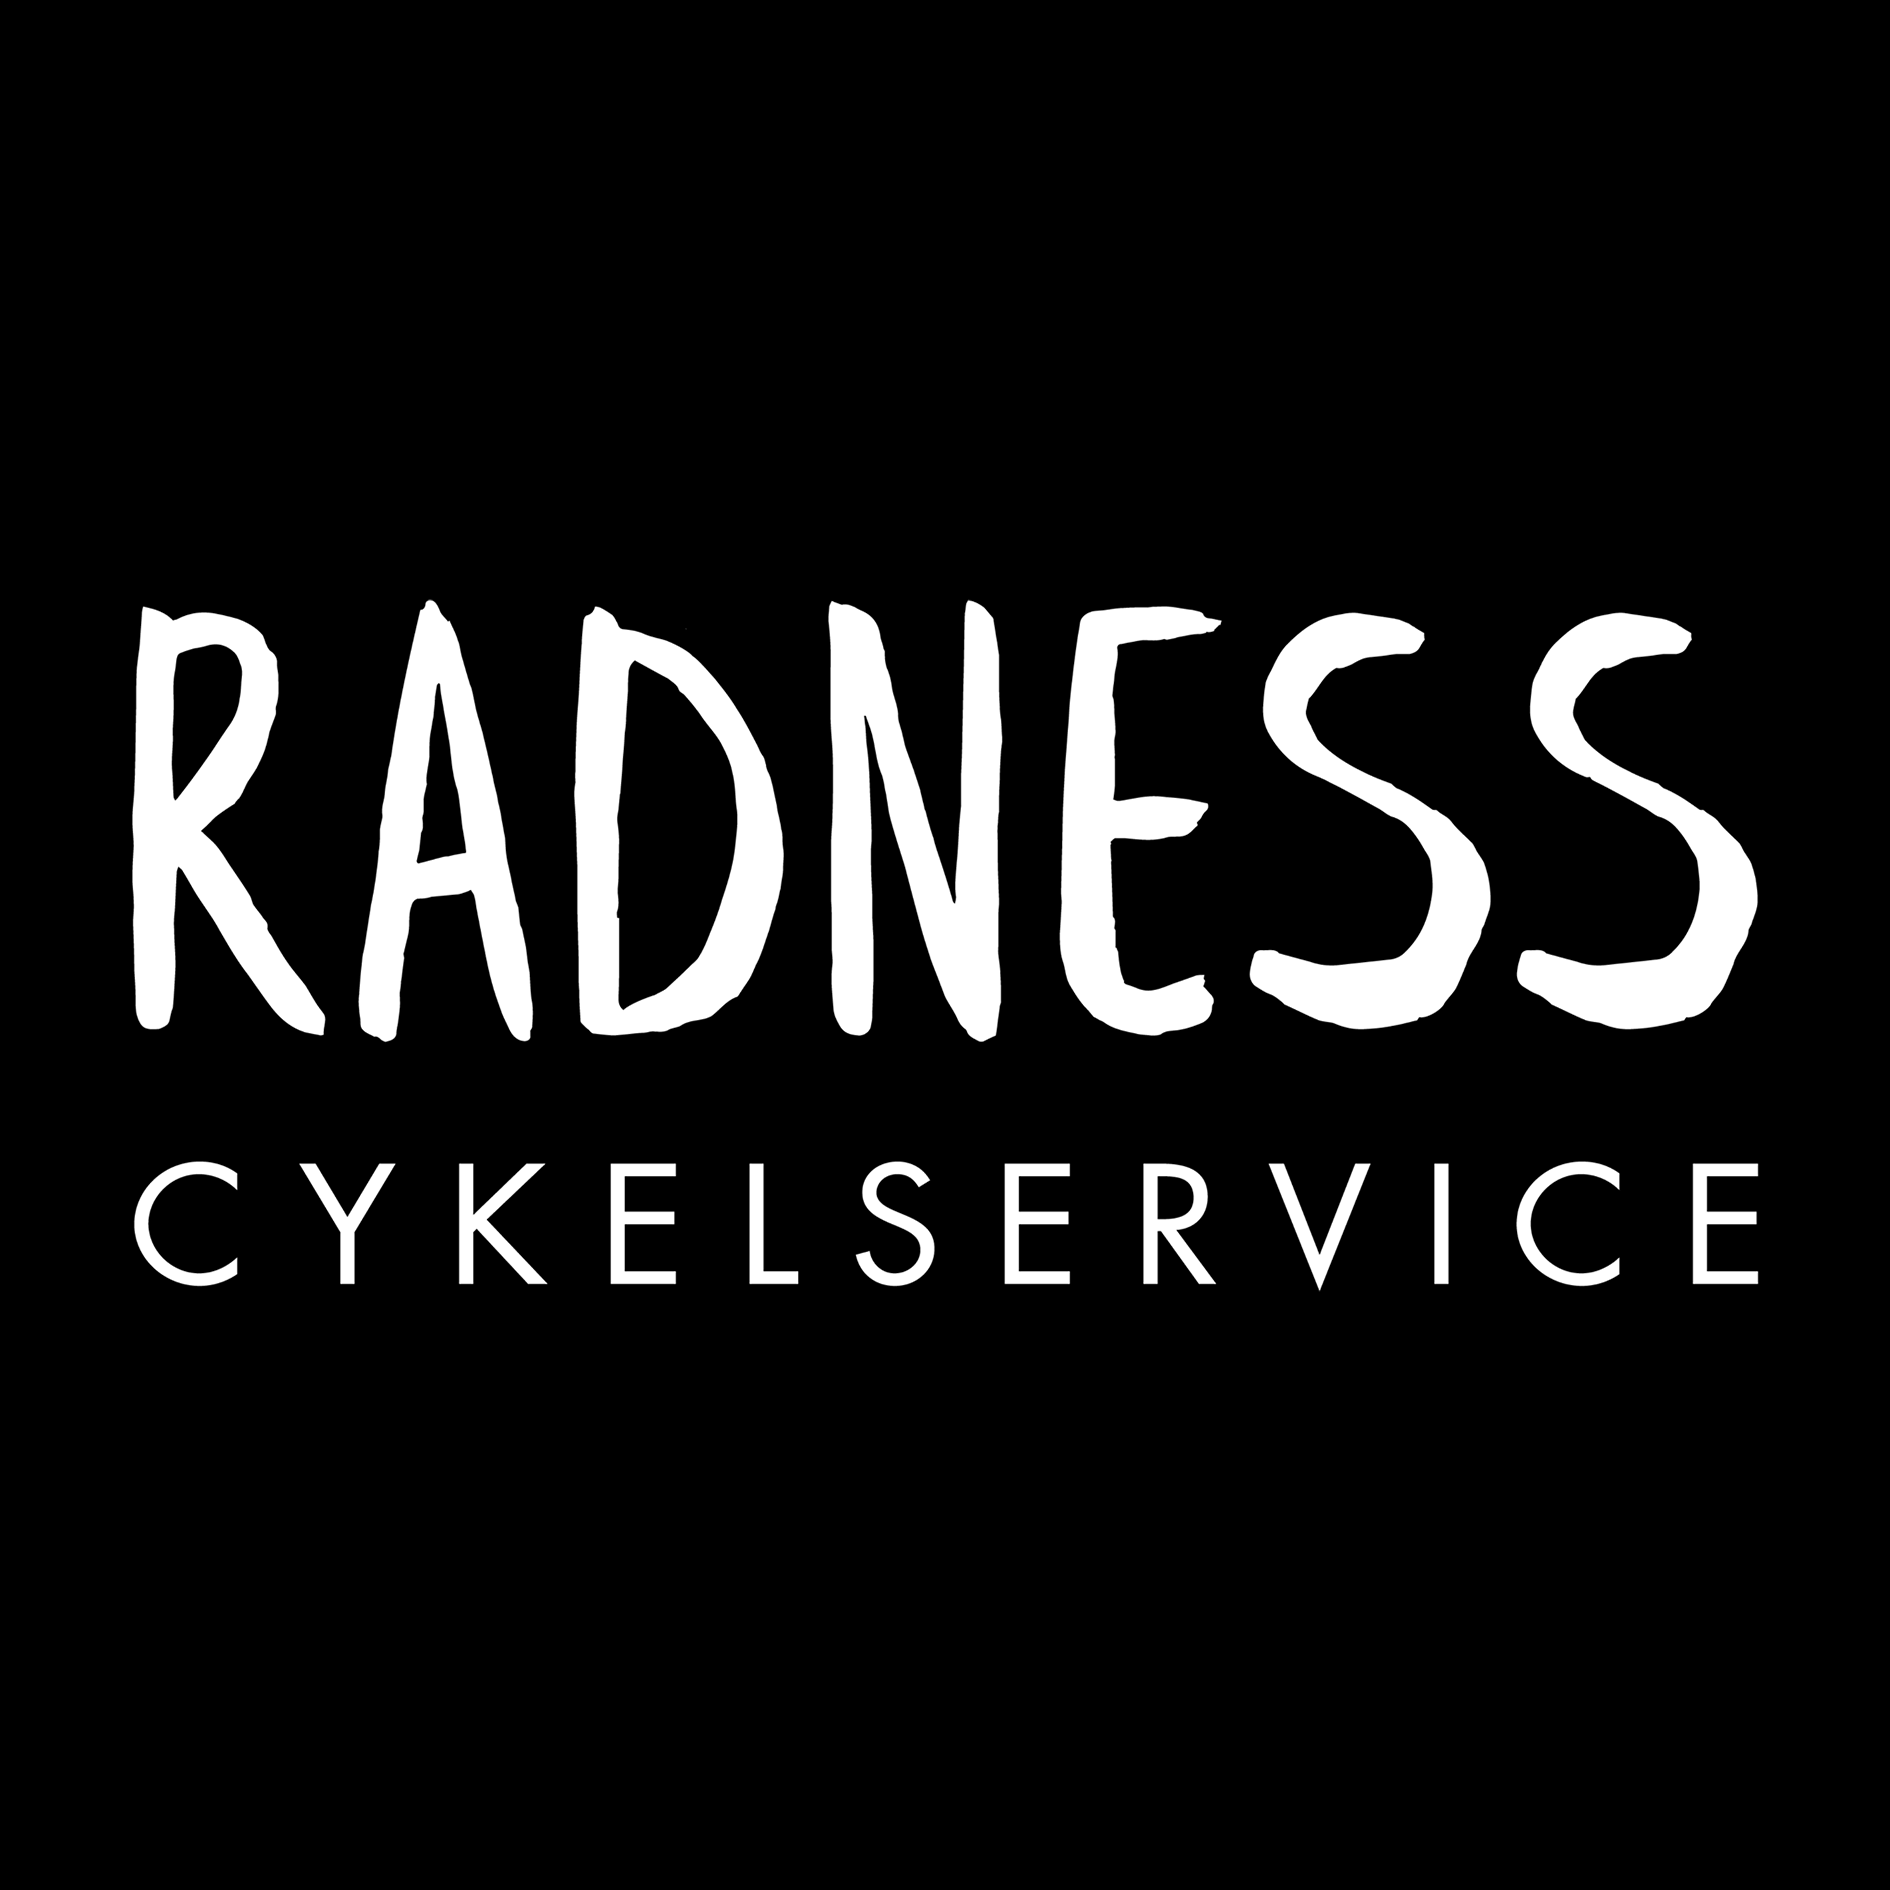 Radness bicycle service